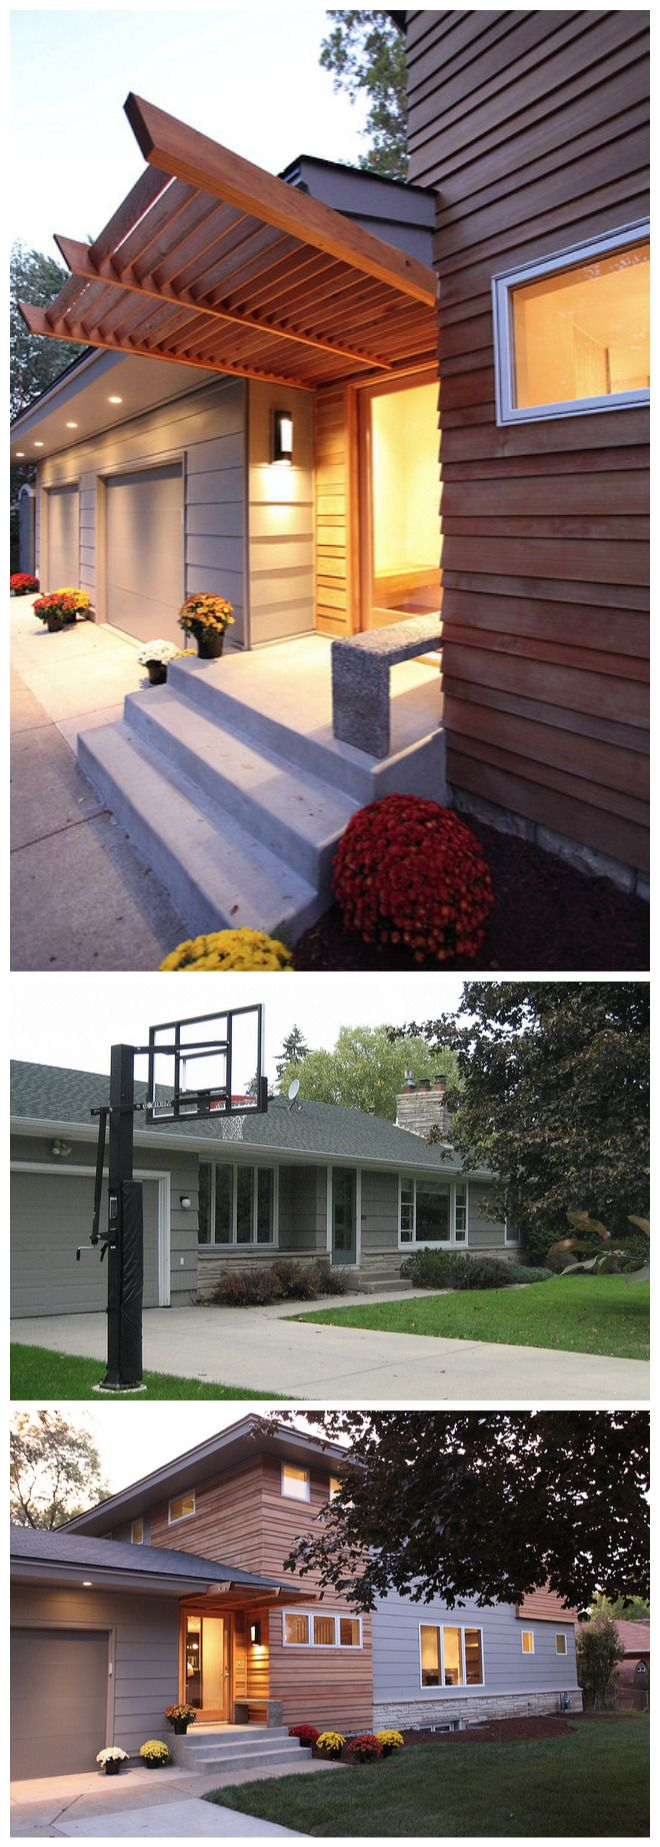 Before And After Of Ranch / Rambler Renovation